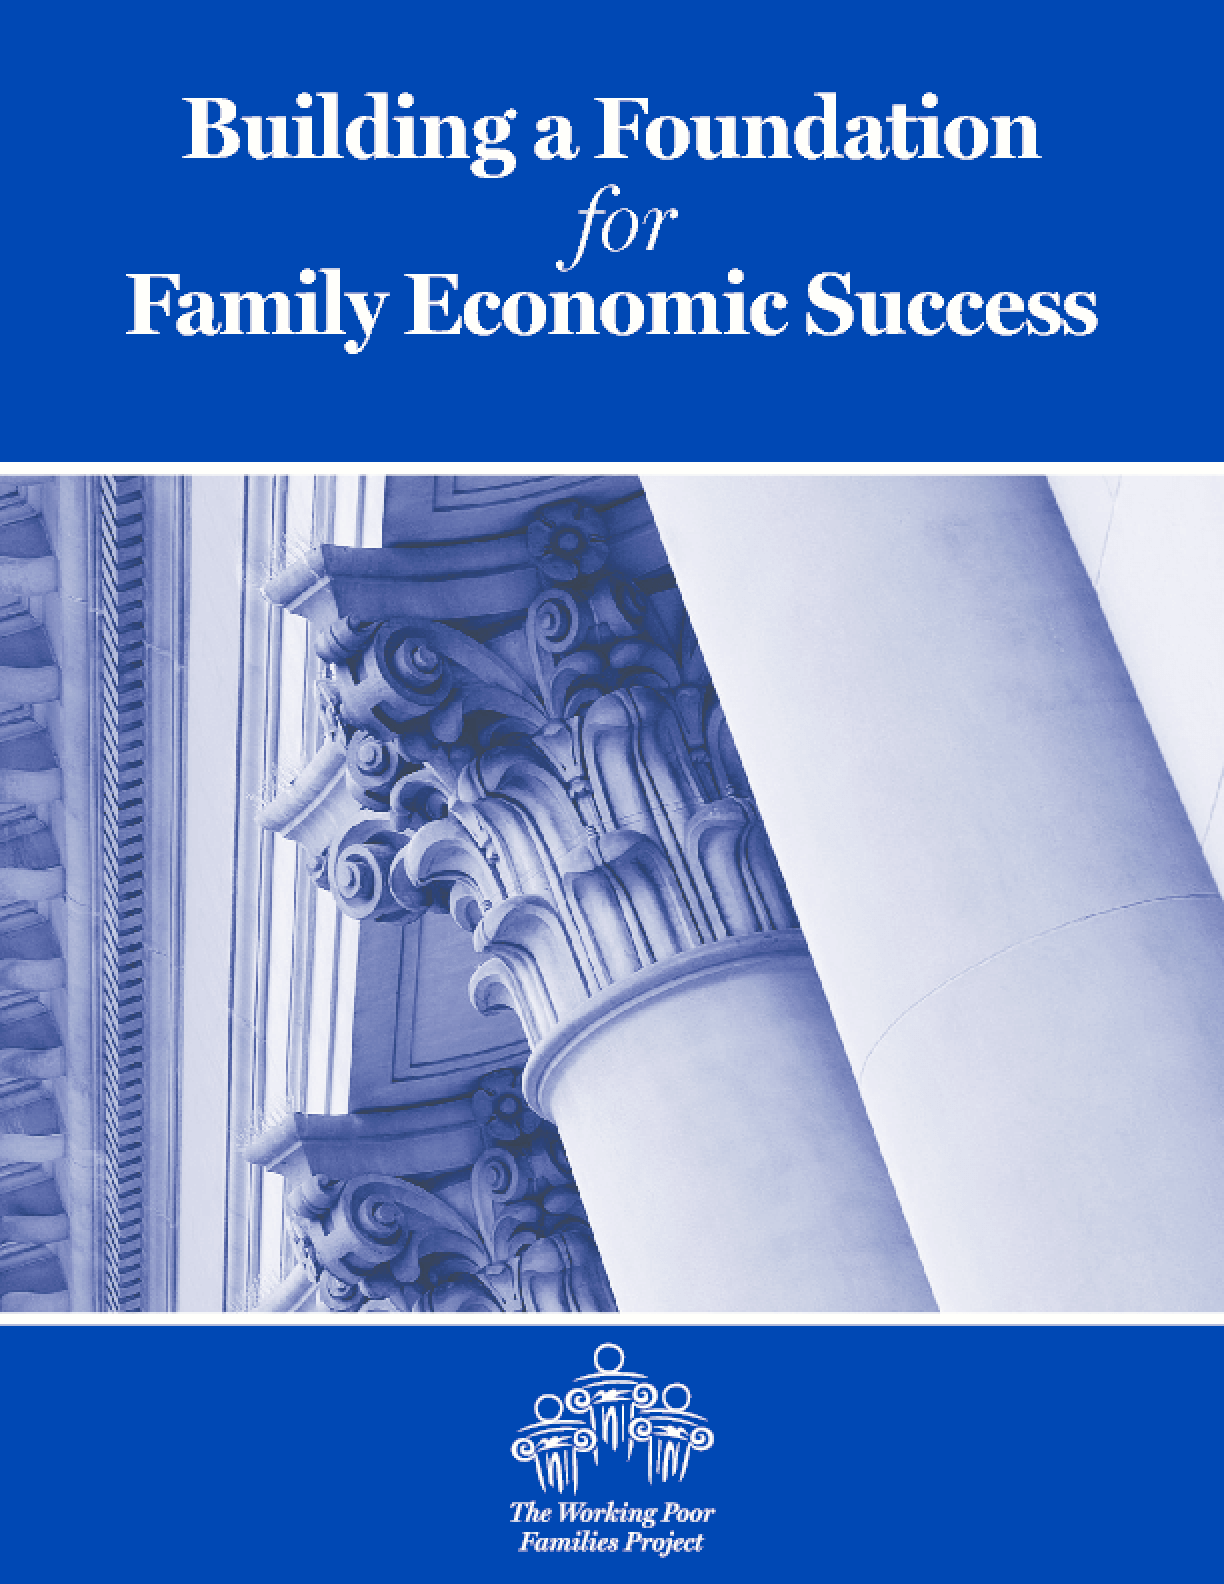 Building a Foundation for Family Economic Success